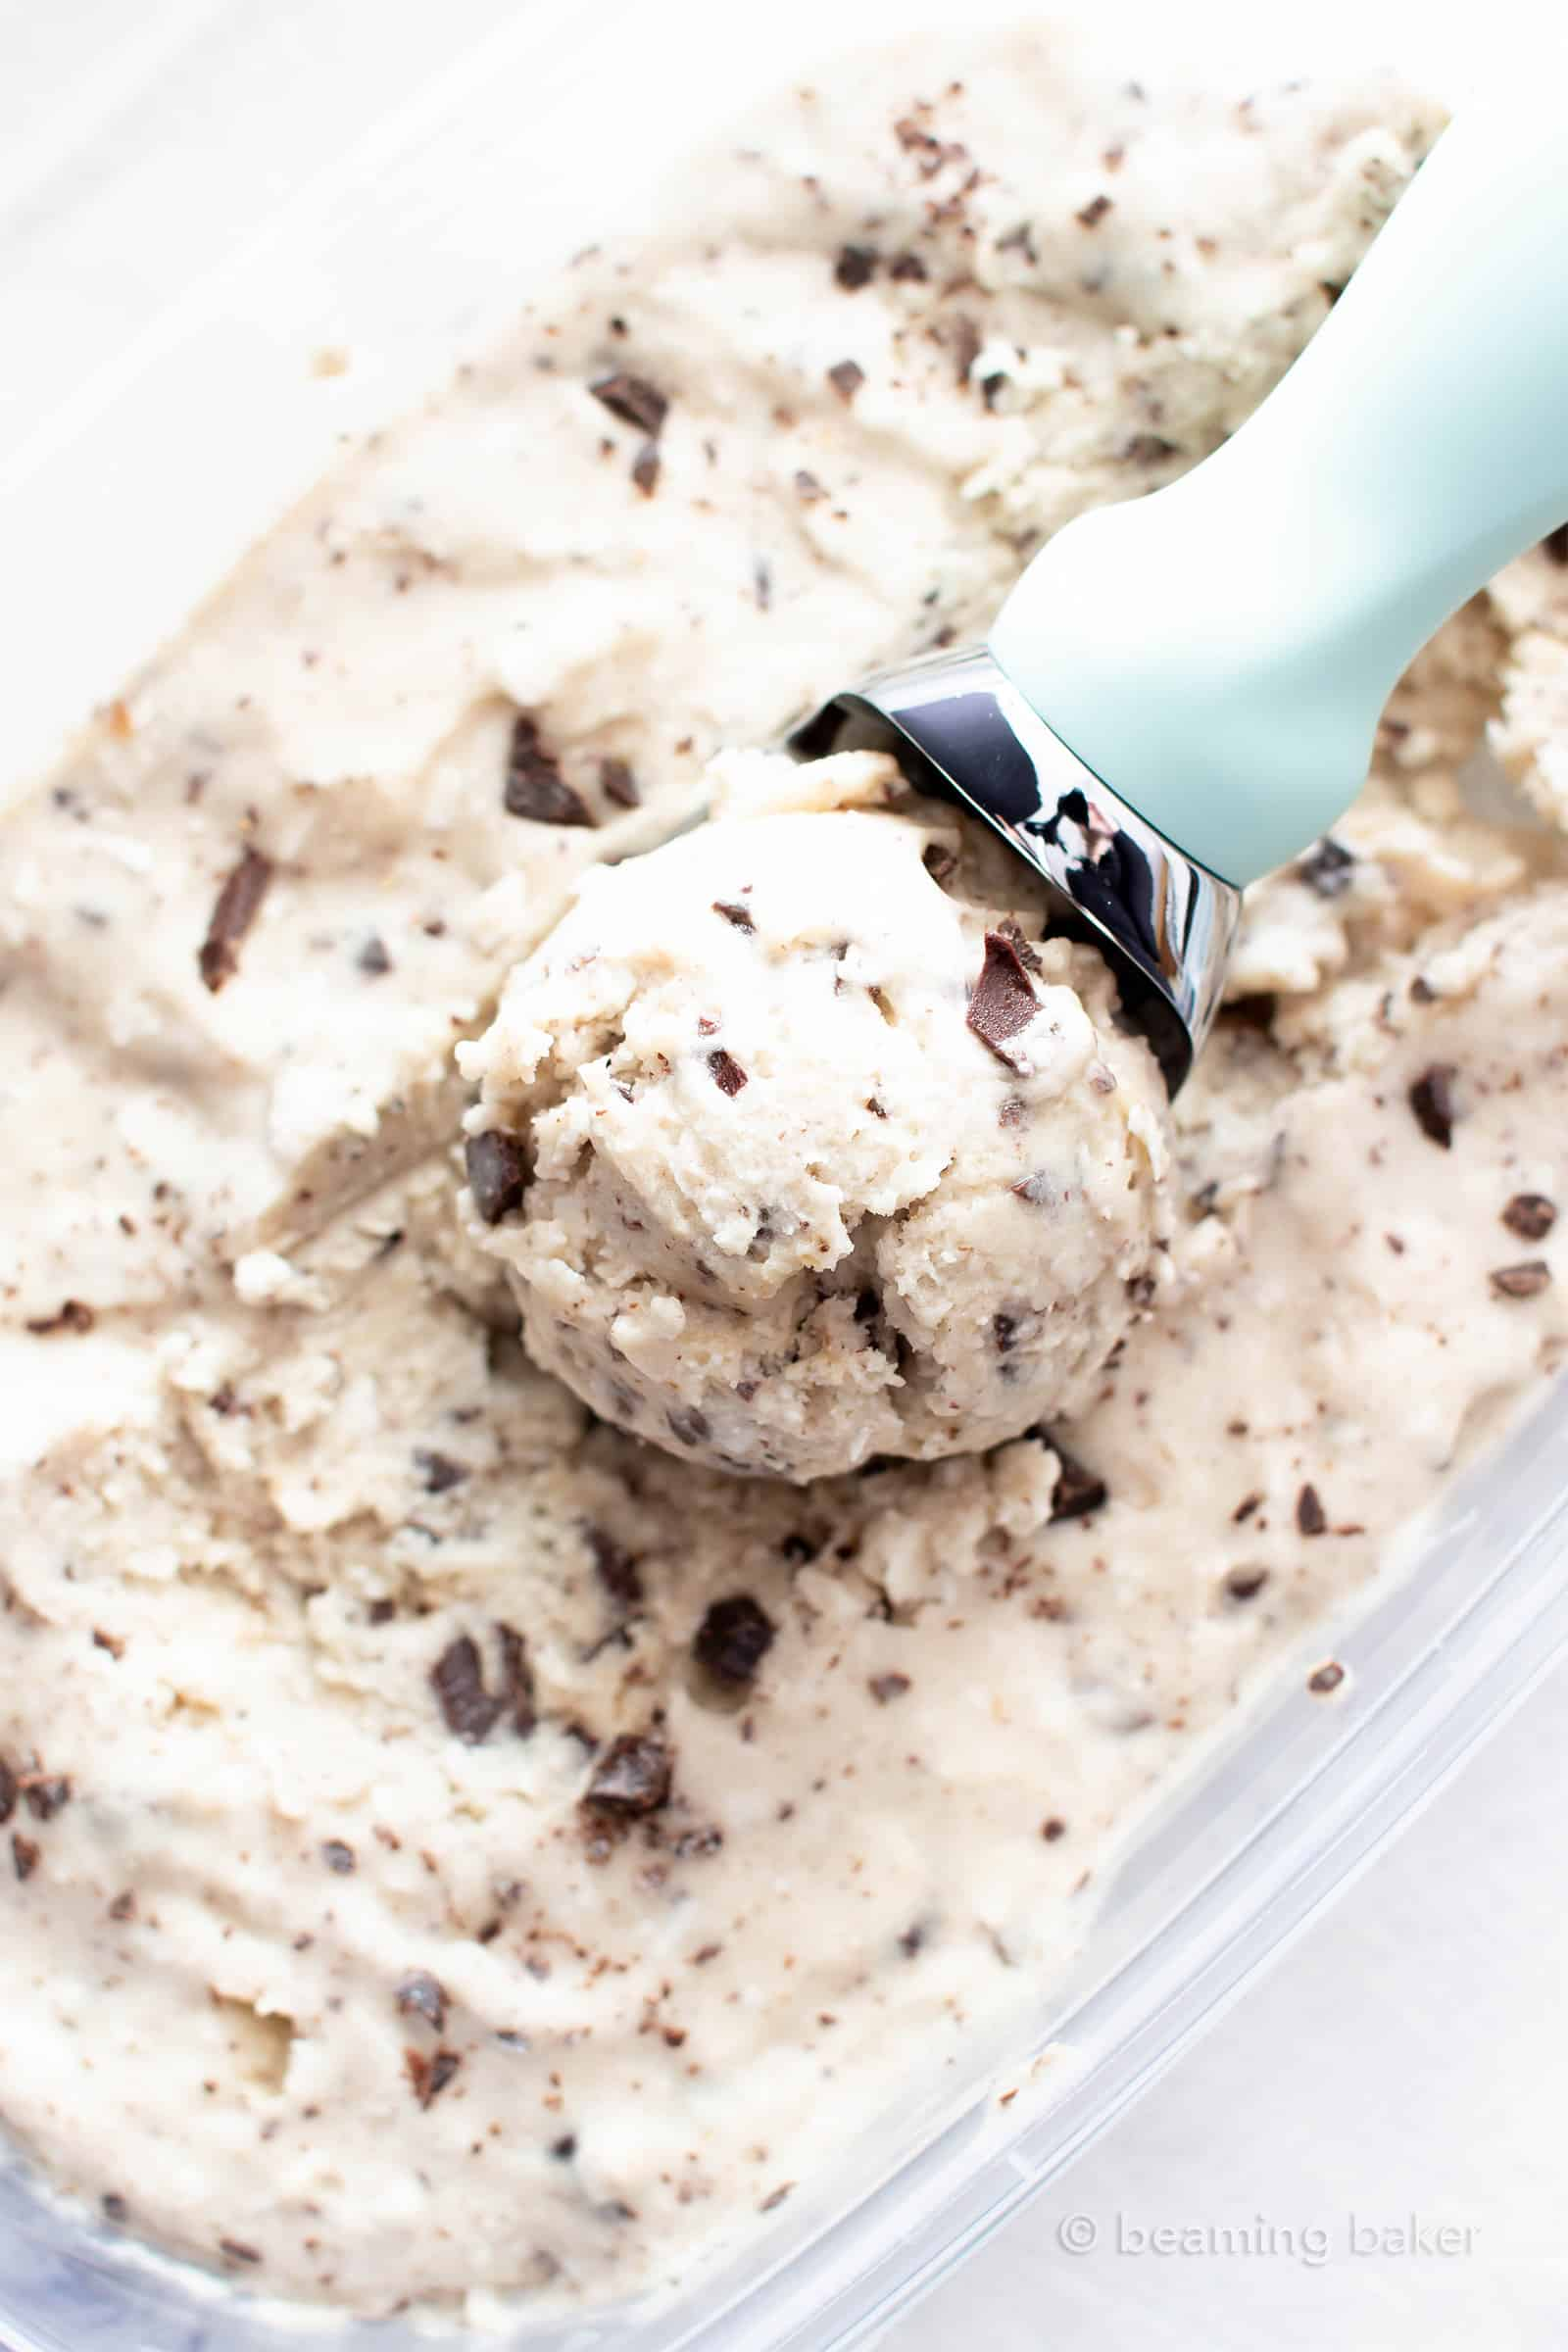 Coconut Chocolate Chip Vegan Ice Cream Recipe: this delicious vegan ice cream recipe is wonderfully rich 'n creamy! The best homemade vegan ice cream—packed with coconut & chocolate chips, no churn. #Vegan #IceCream #Coconut #ChocolateChip #VeganIceCream | Recipe at BeamingBaker.com